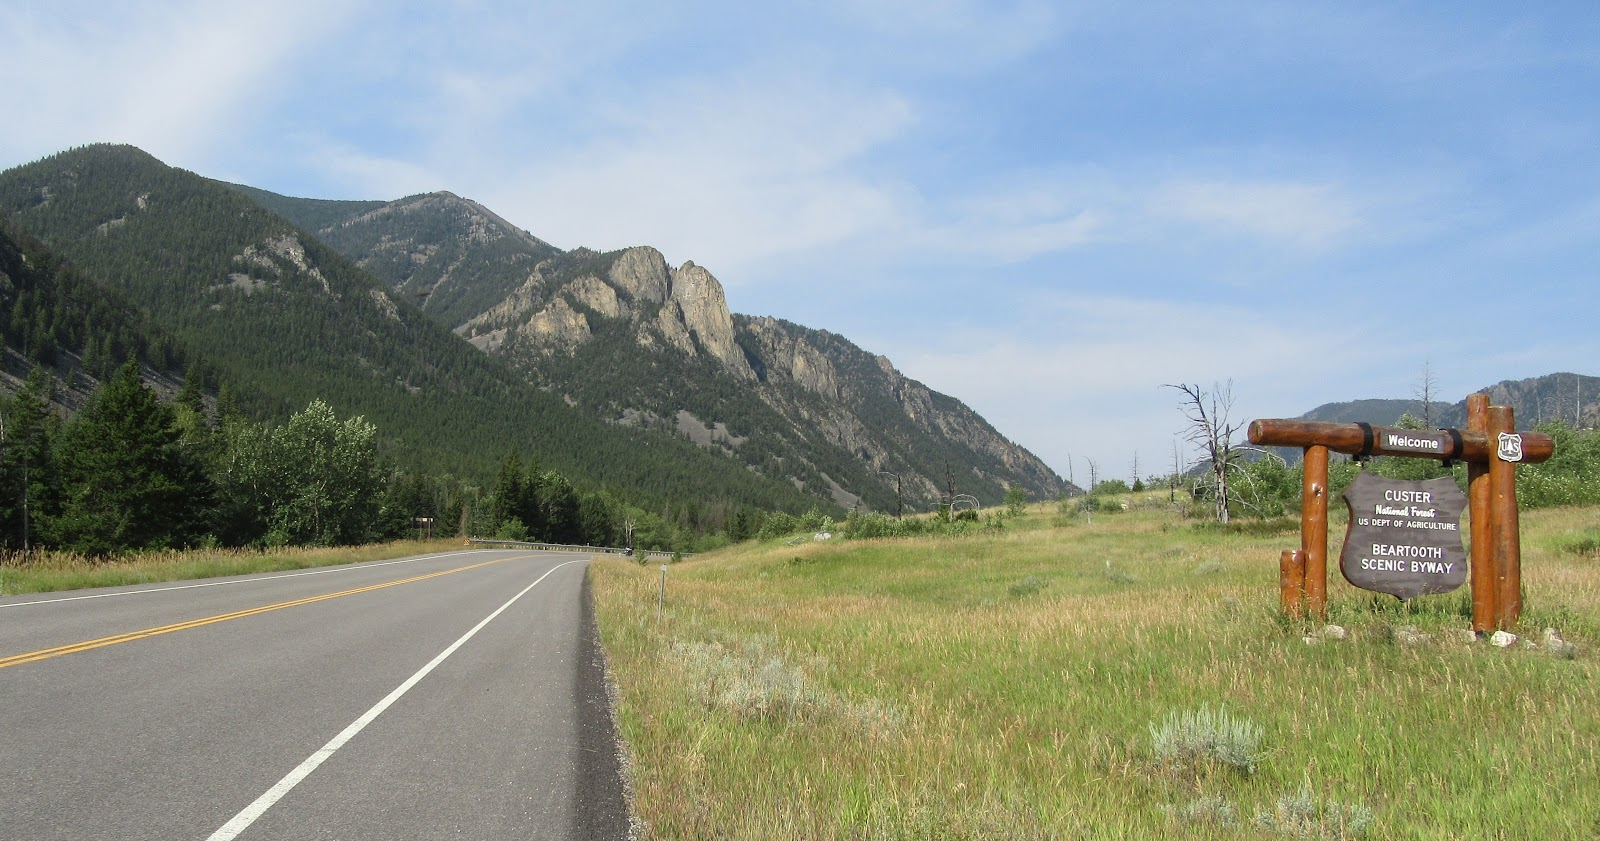 Bike climb up Bear Tooth Pass North - roadway and Custer Gallatin National Forest sign